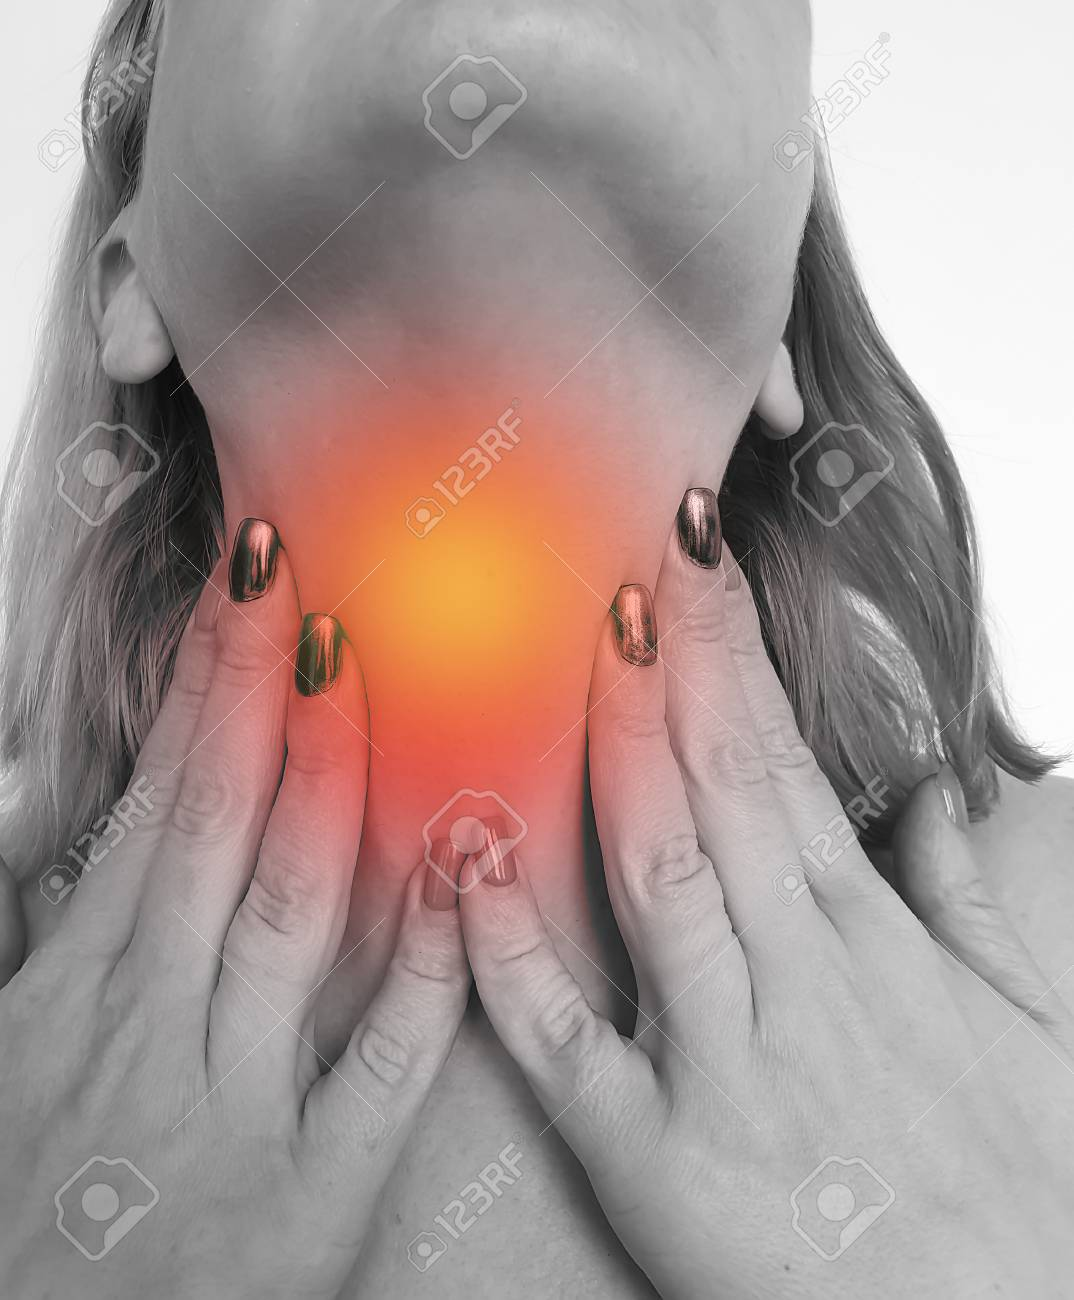 woman sore throat symptom disease inflammation bad